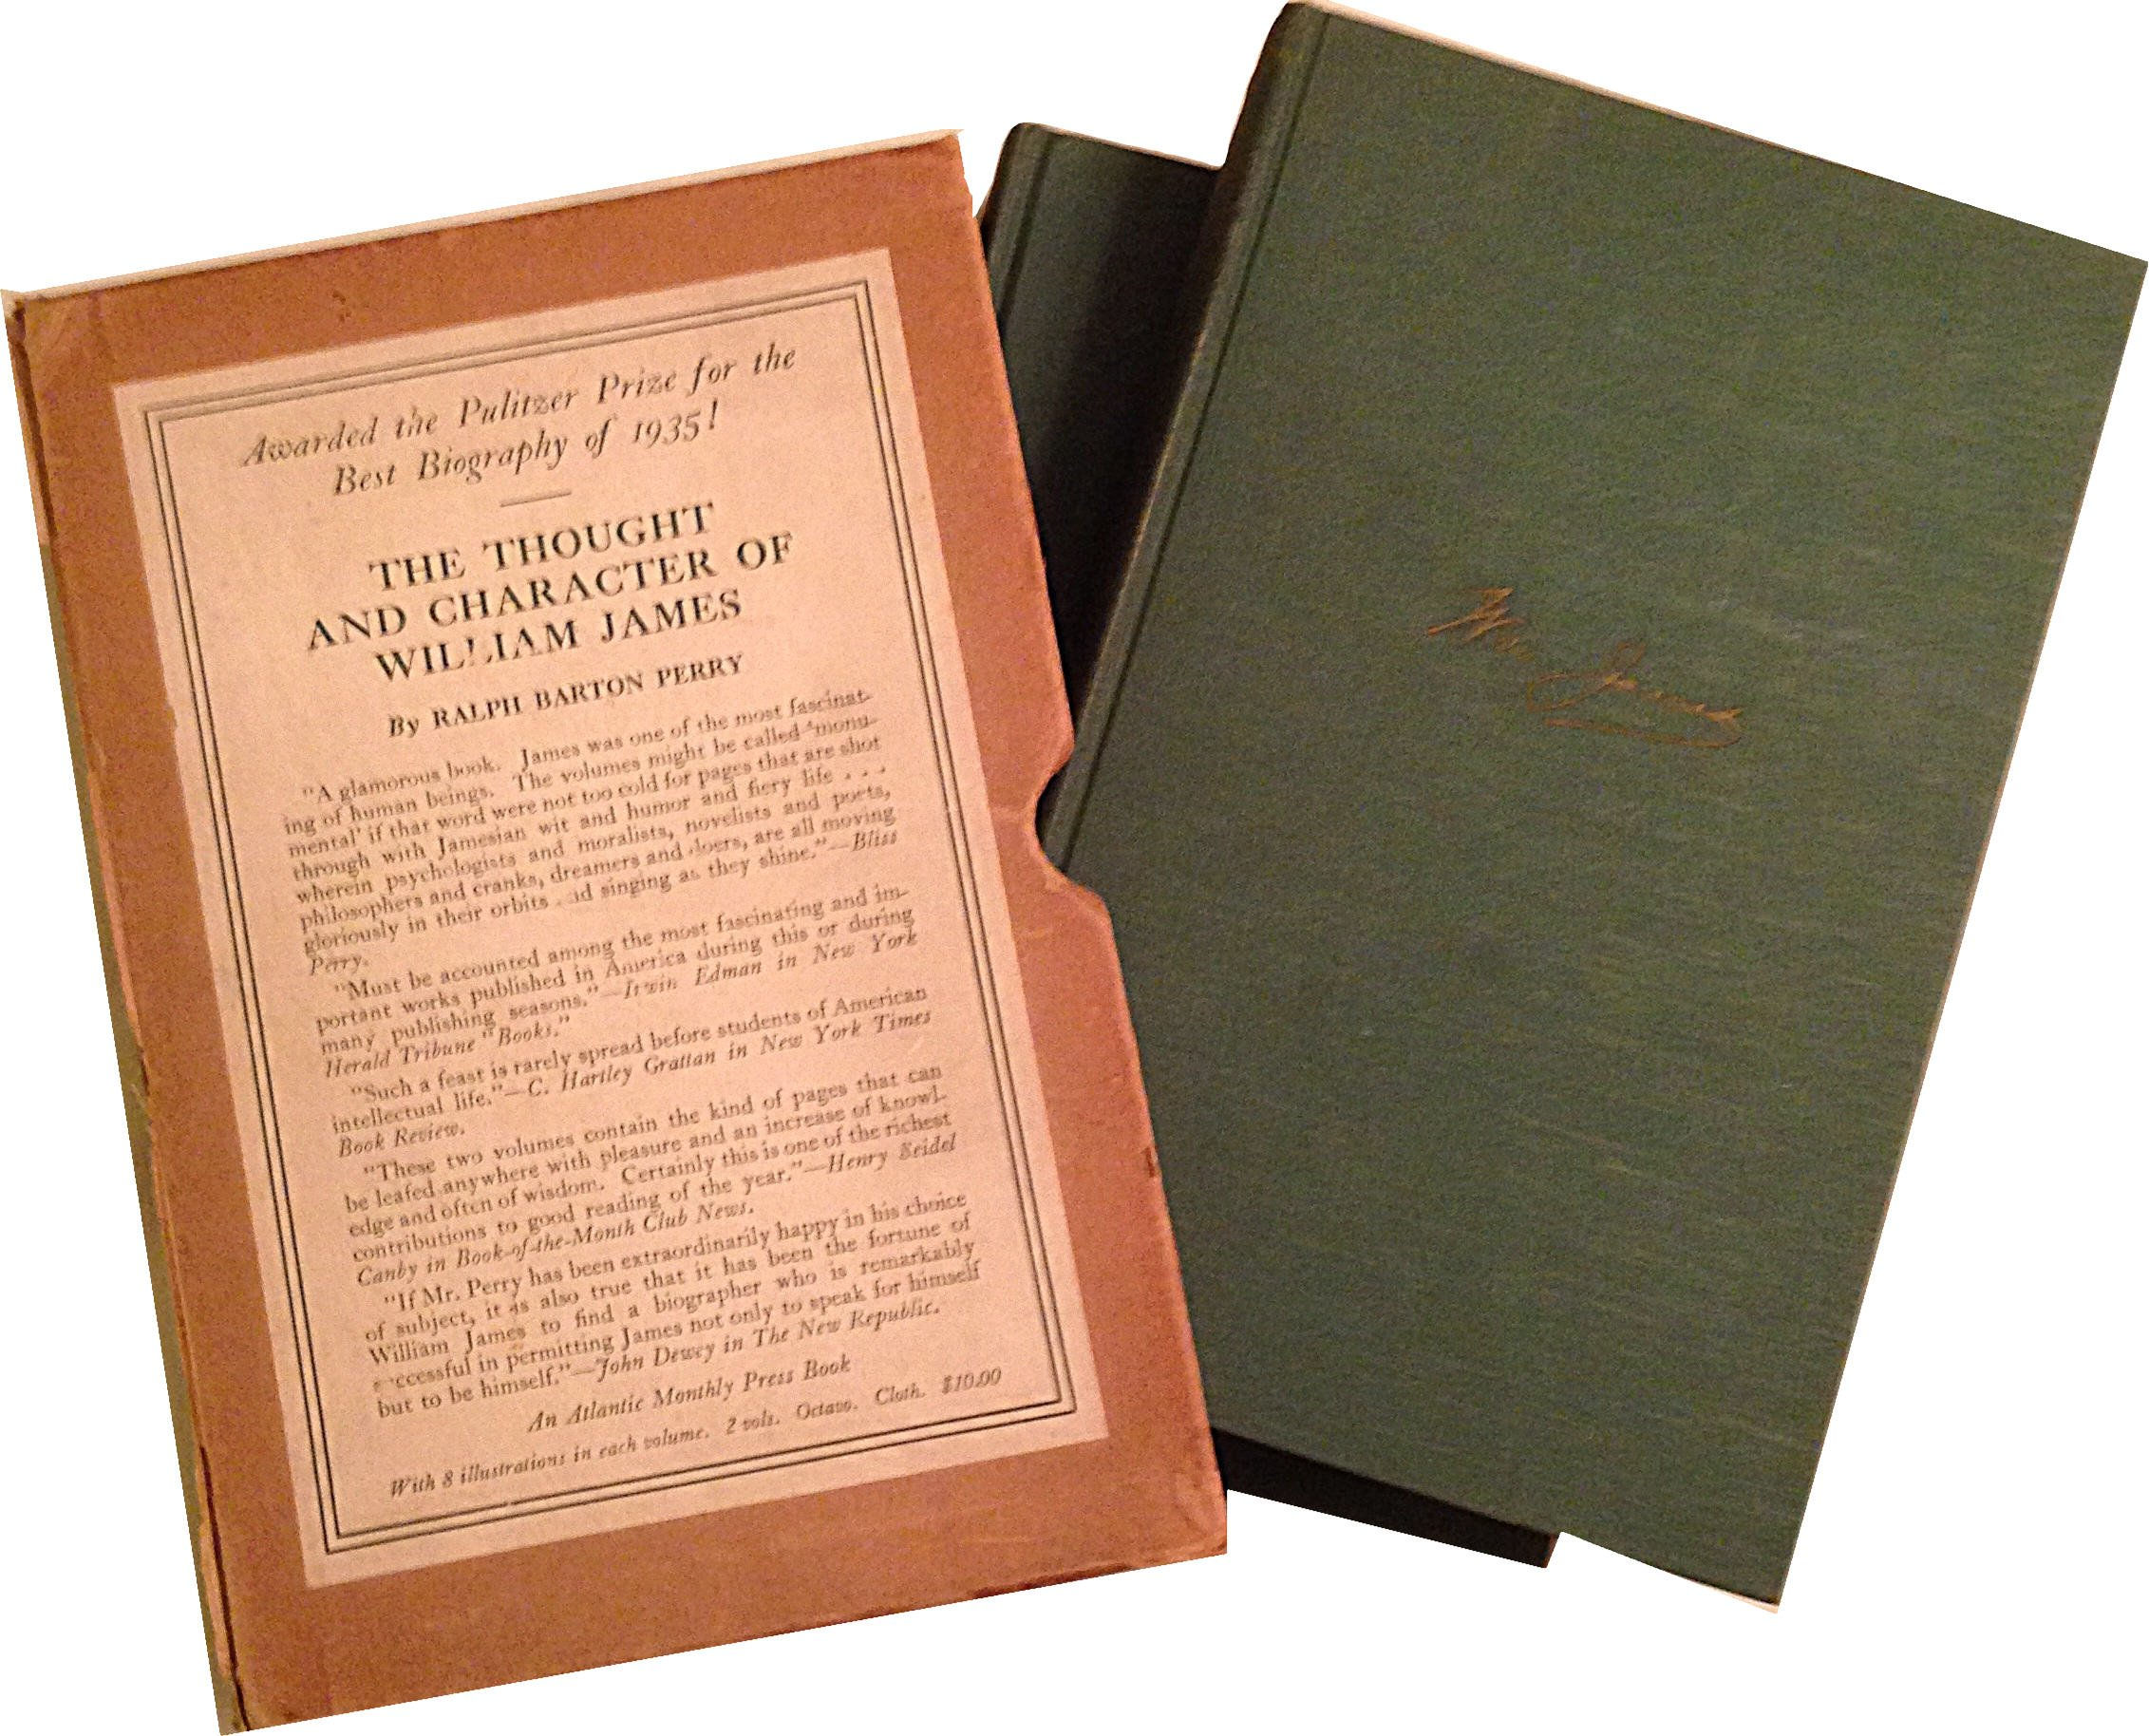 The Thought and Character of William James Two Volumes: Robert Barton  Perry: Amazon.com: Books